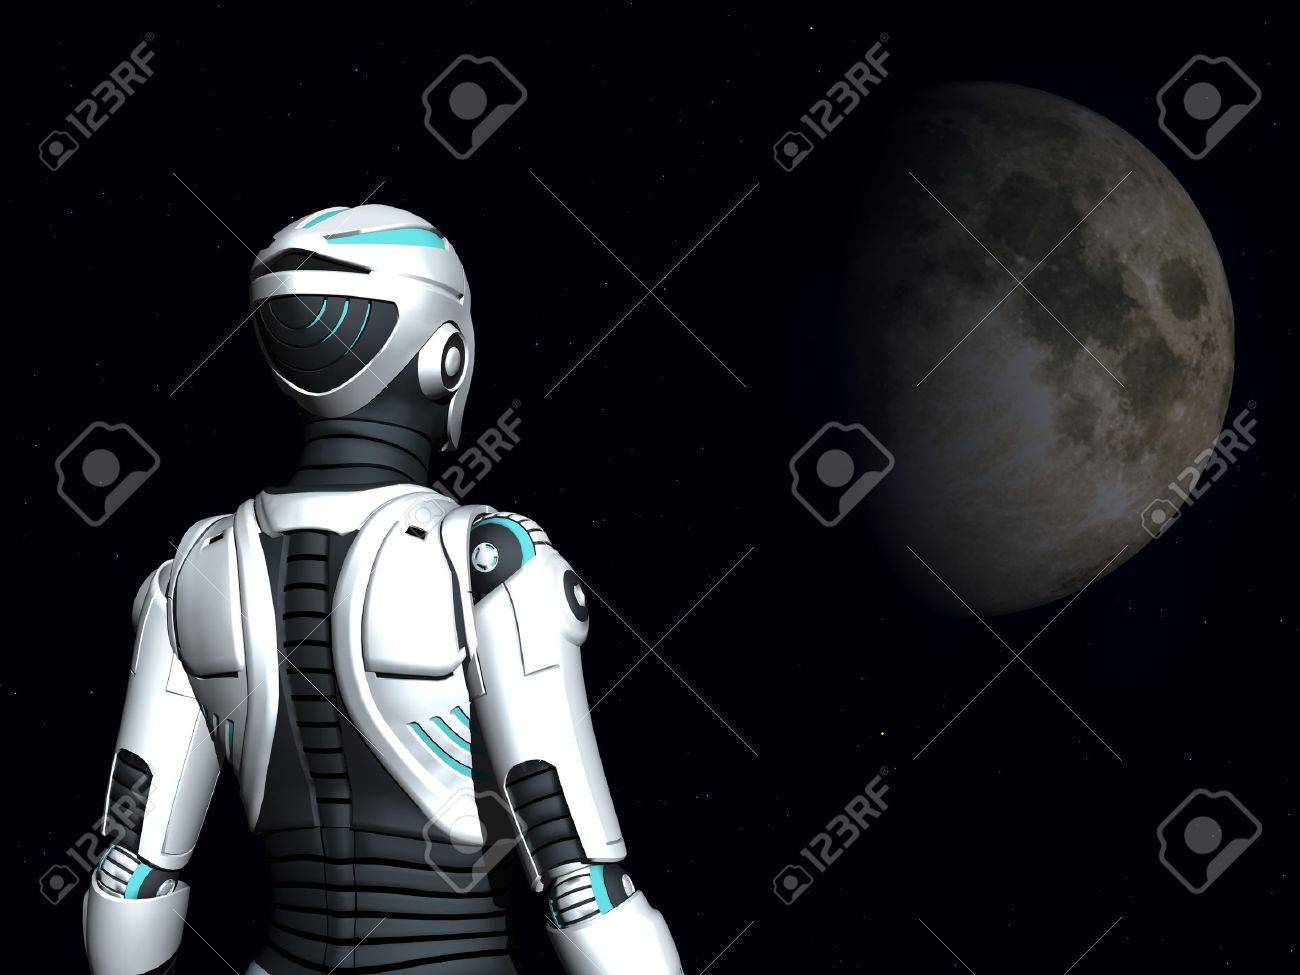 The back of an android woman, gazing out in space. Stars and a planet in the background. Stock Photo - 12020225